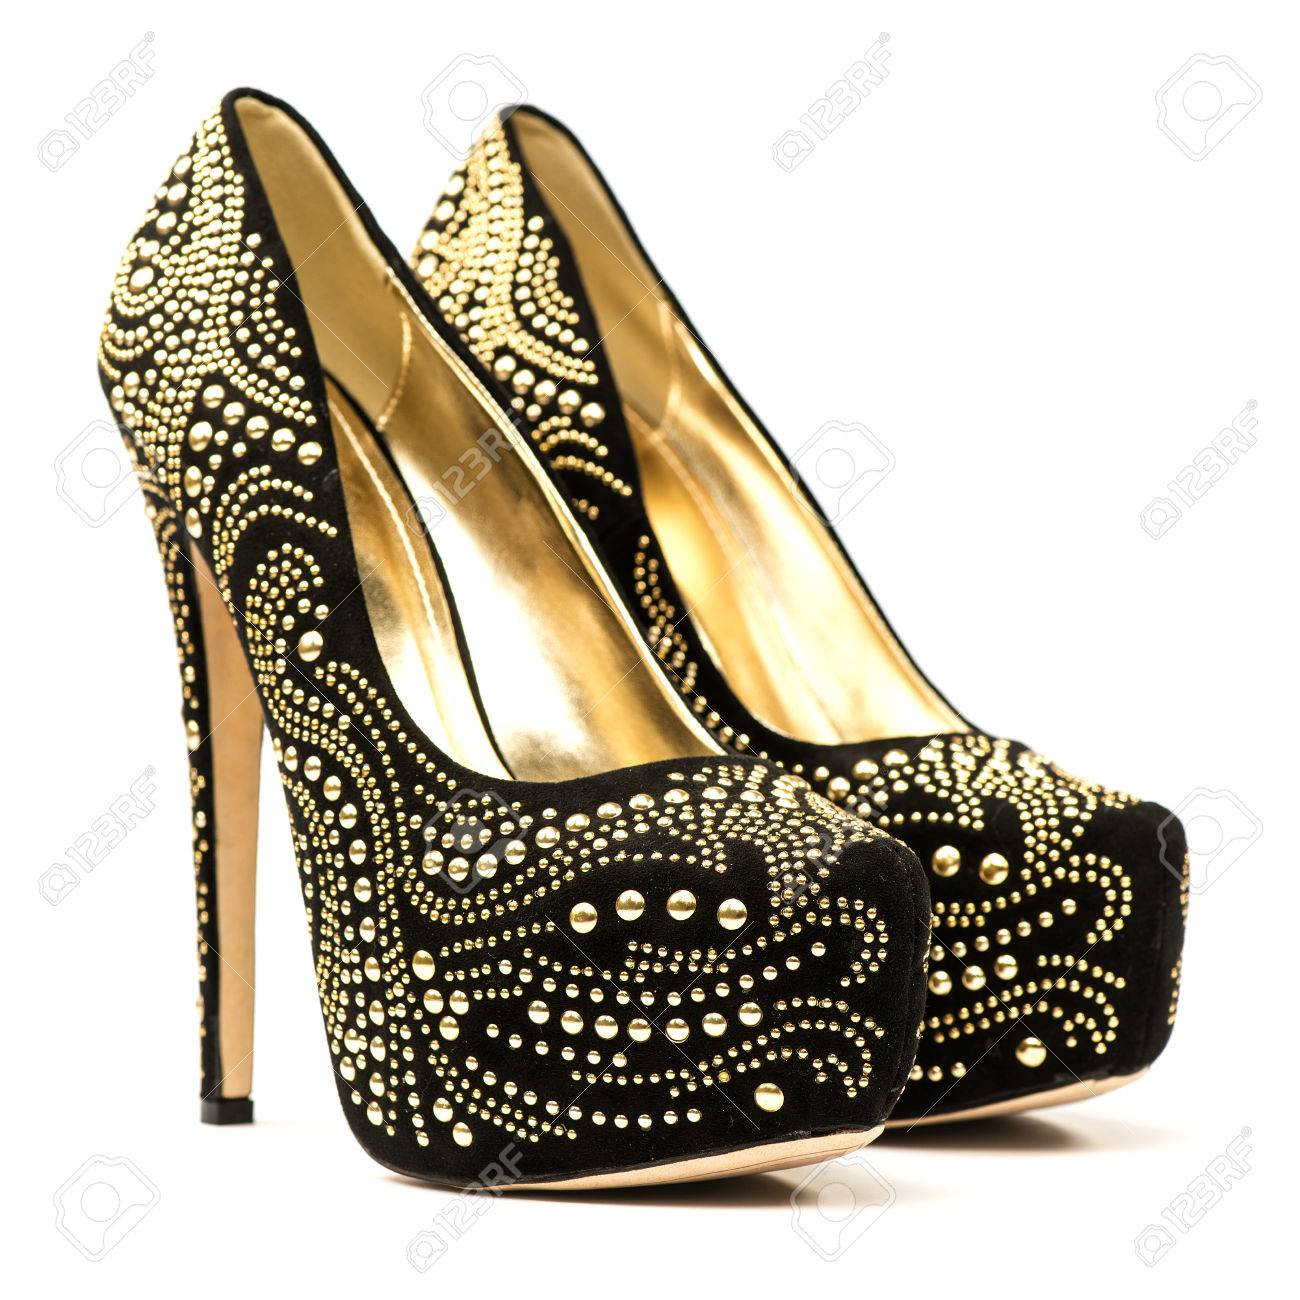 High Heels Black And Gold